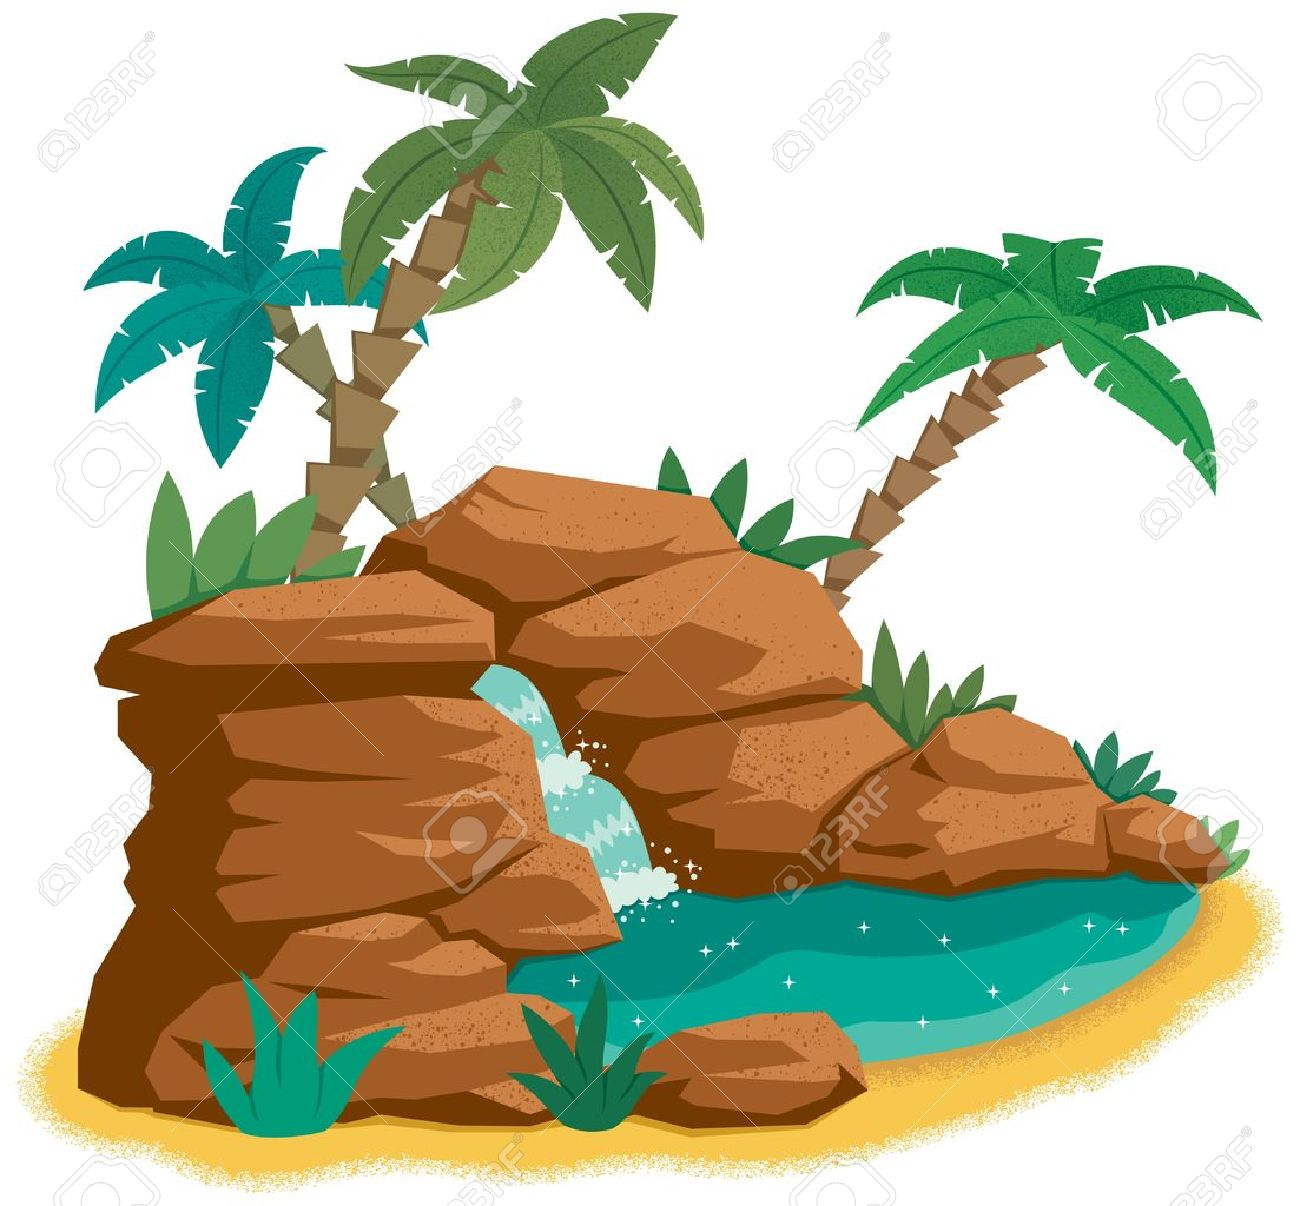 Cartoon desert oasis.  No transparency and gradients used. Stock Vector - 12176816